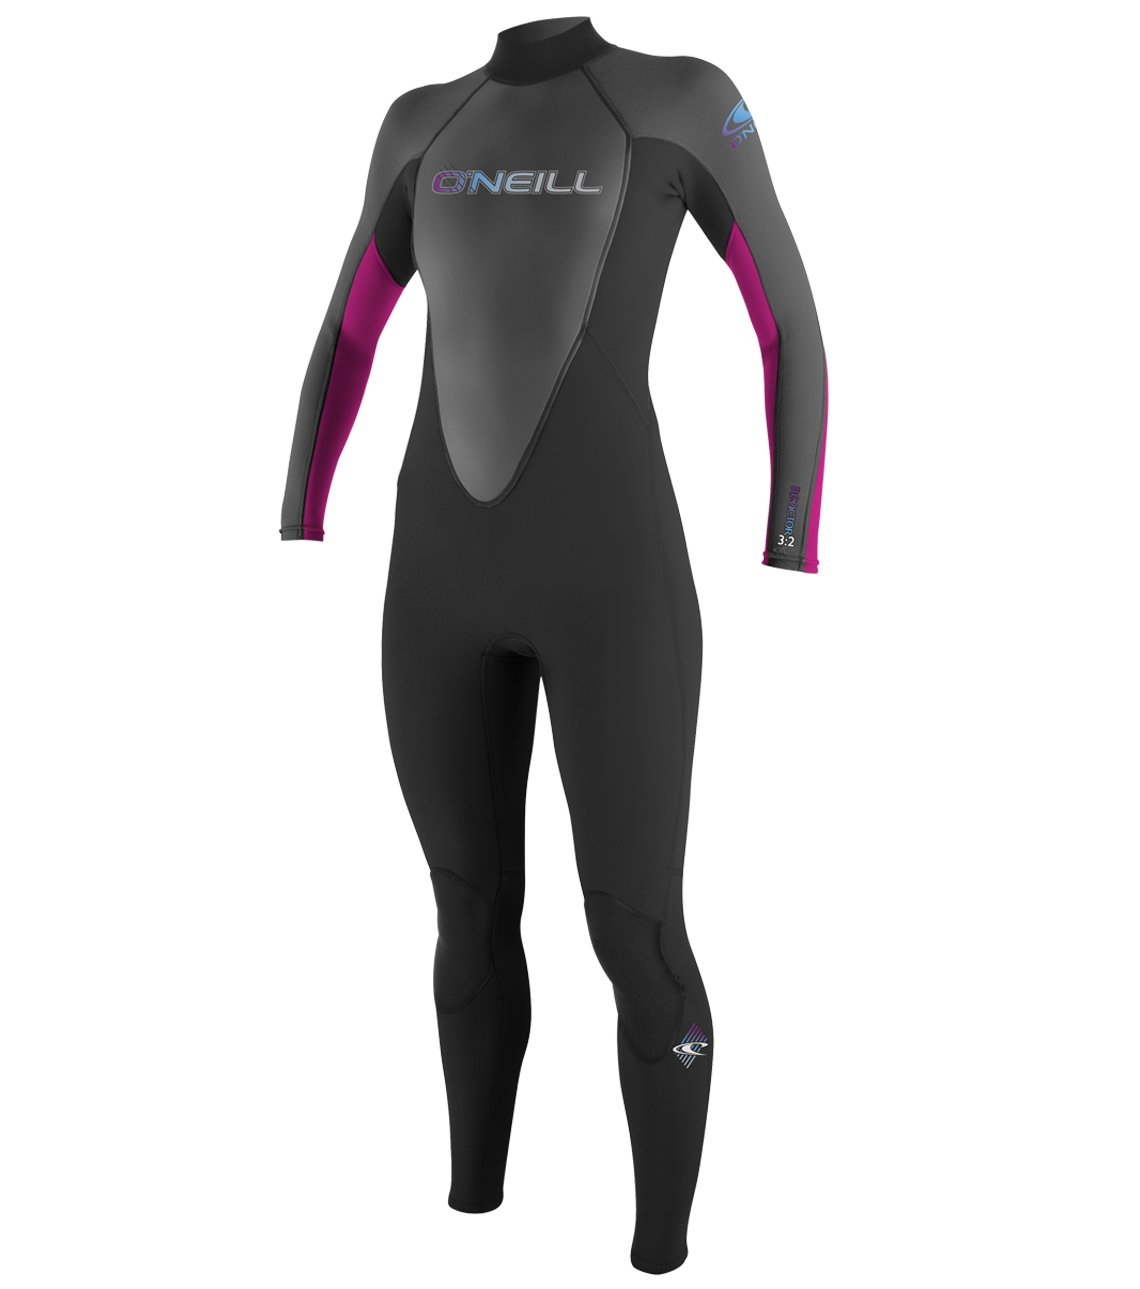 O'Neill   Women's Reactor 3/2mm Back Zip Full Wetsuit,Black/Graphite/Berry,4 by O'Neill Wetsuits (Image #1)